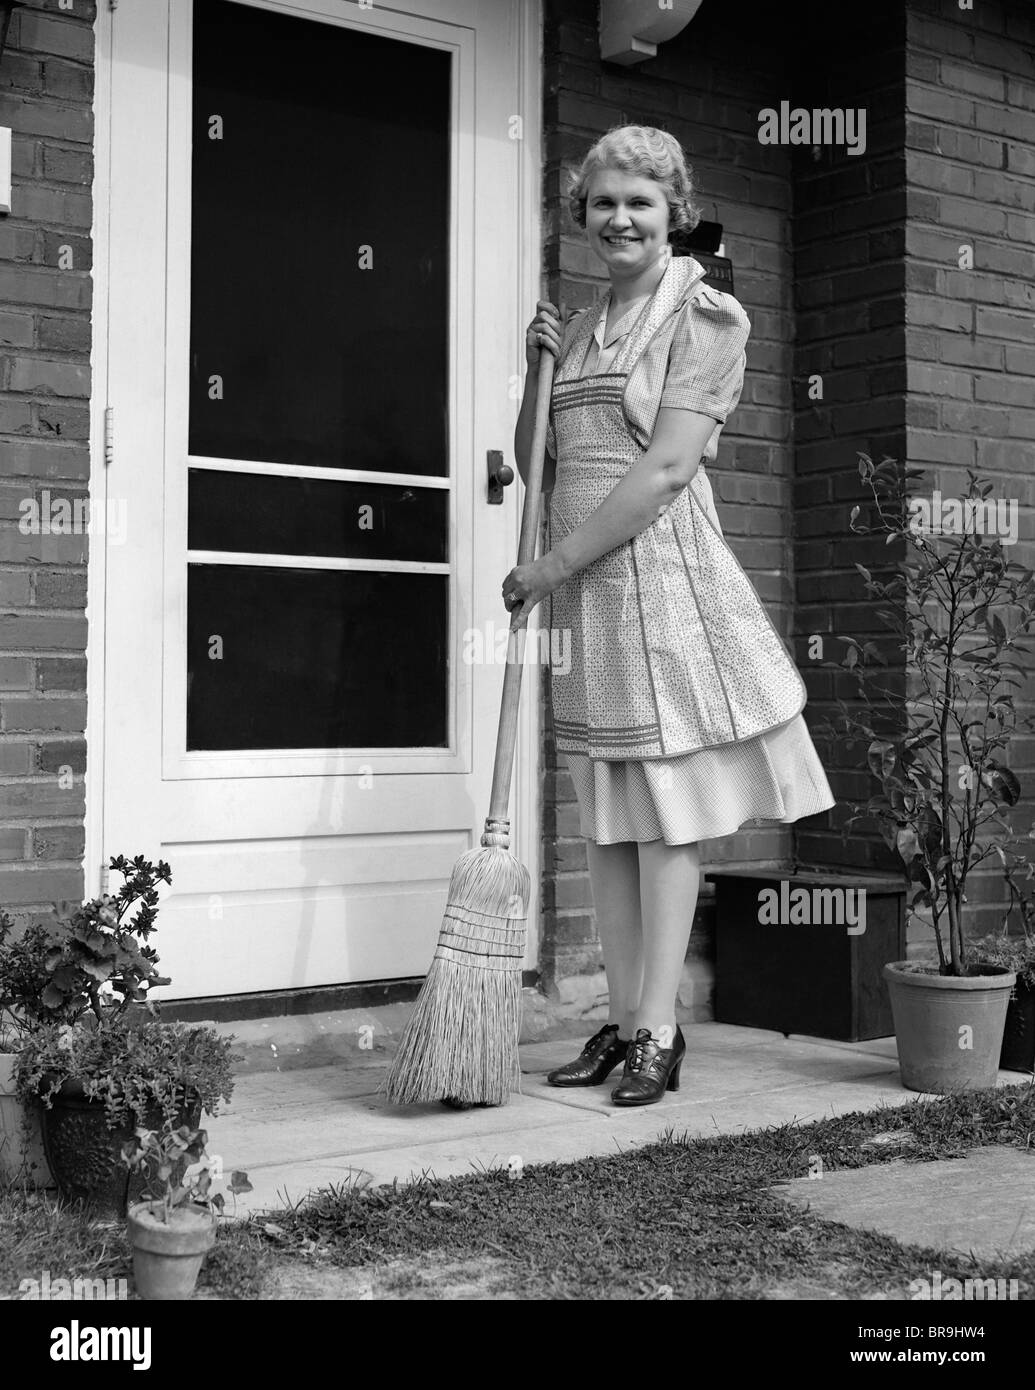 0c48e6321 Retro Woman Cleaning Stock Photos   Retro Woman Cleaning Stock ...